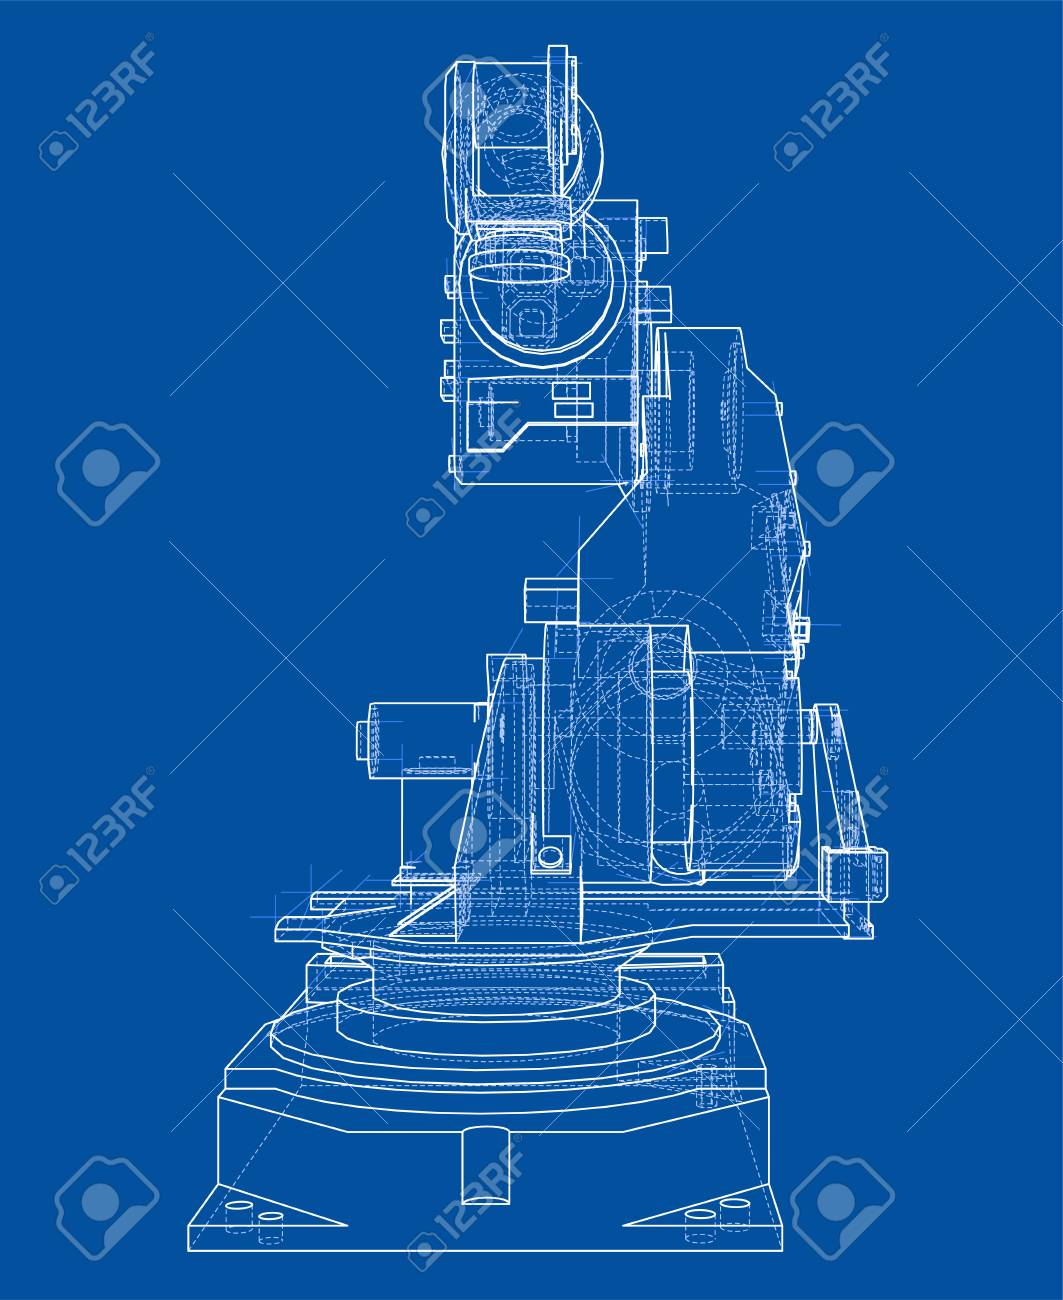 Industrial robot manipulator or robot arm  Vector image rendered